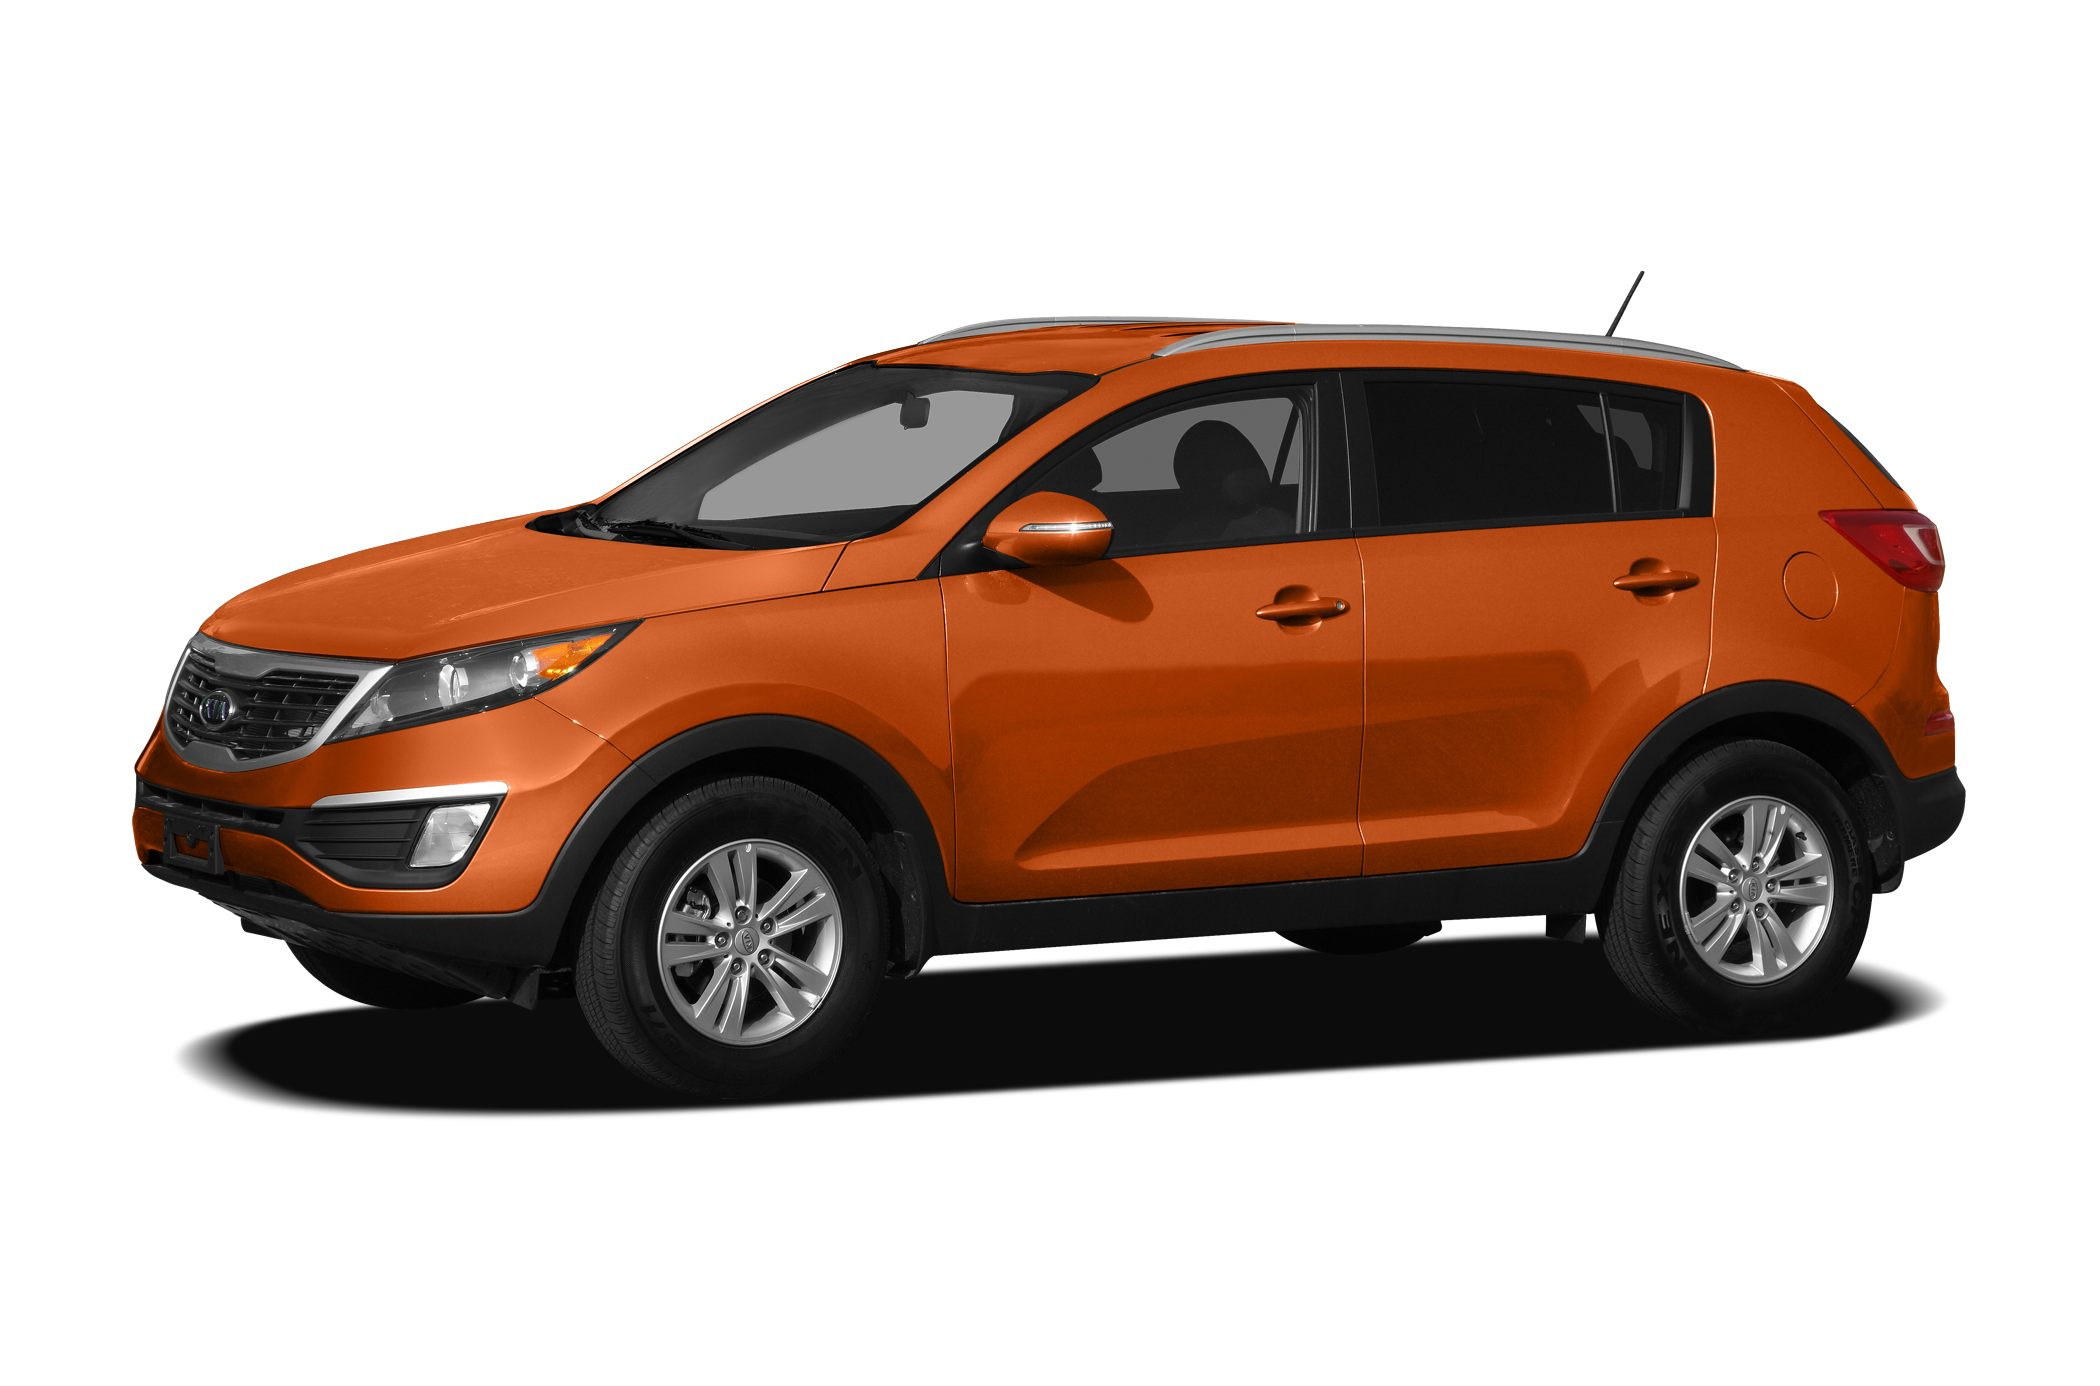 2011 Kia Sportage Base SUV for sale in Oneonta for $22,995 with 38,239 miles